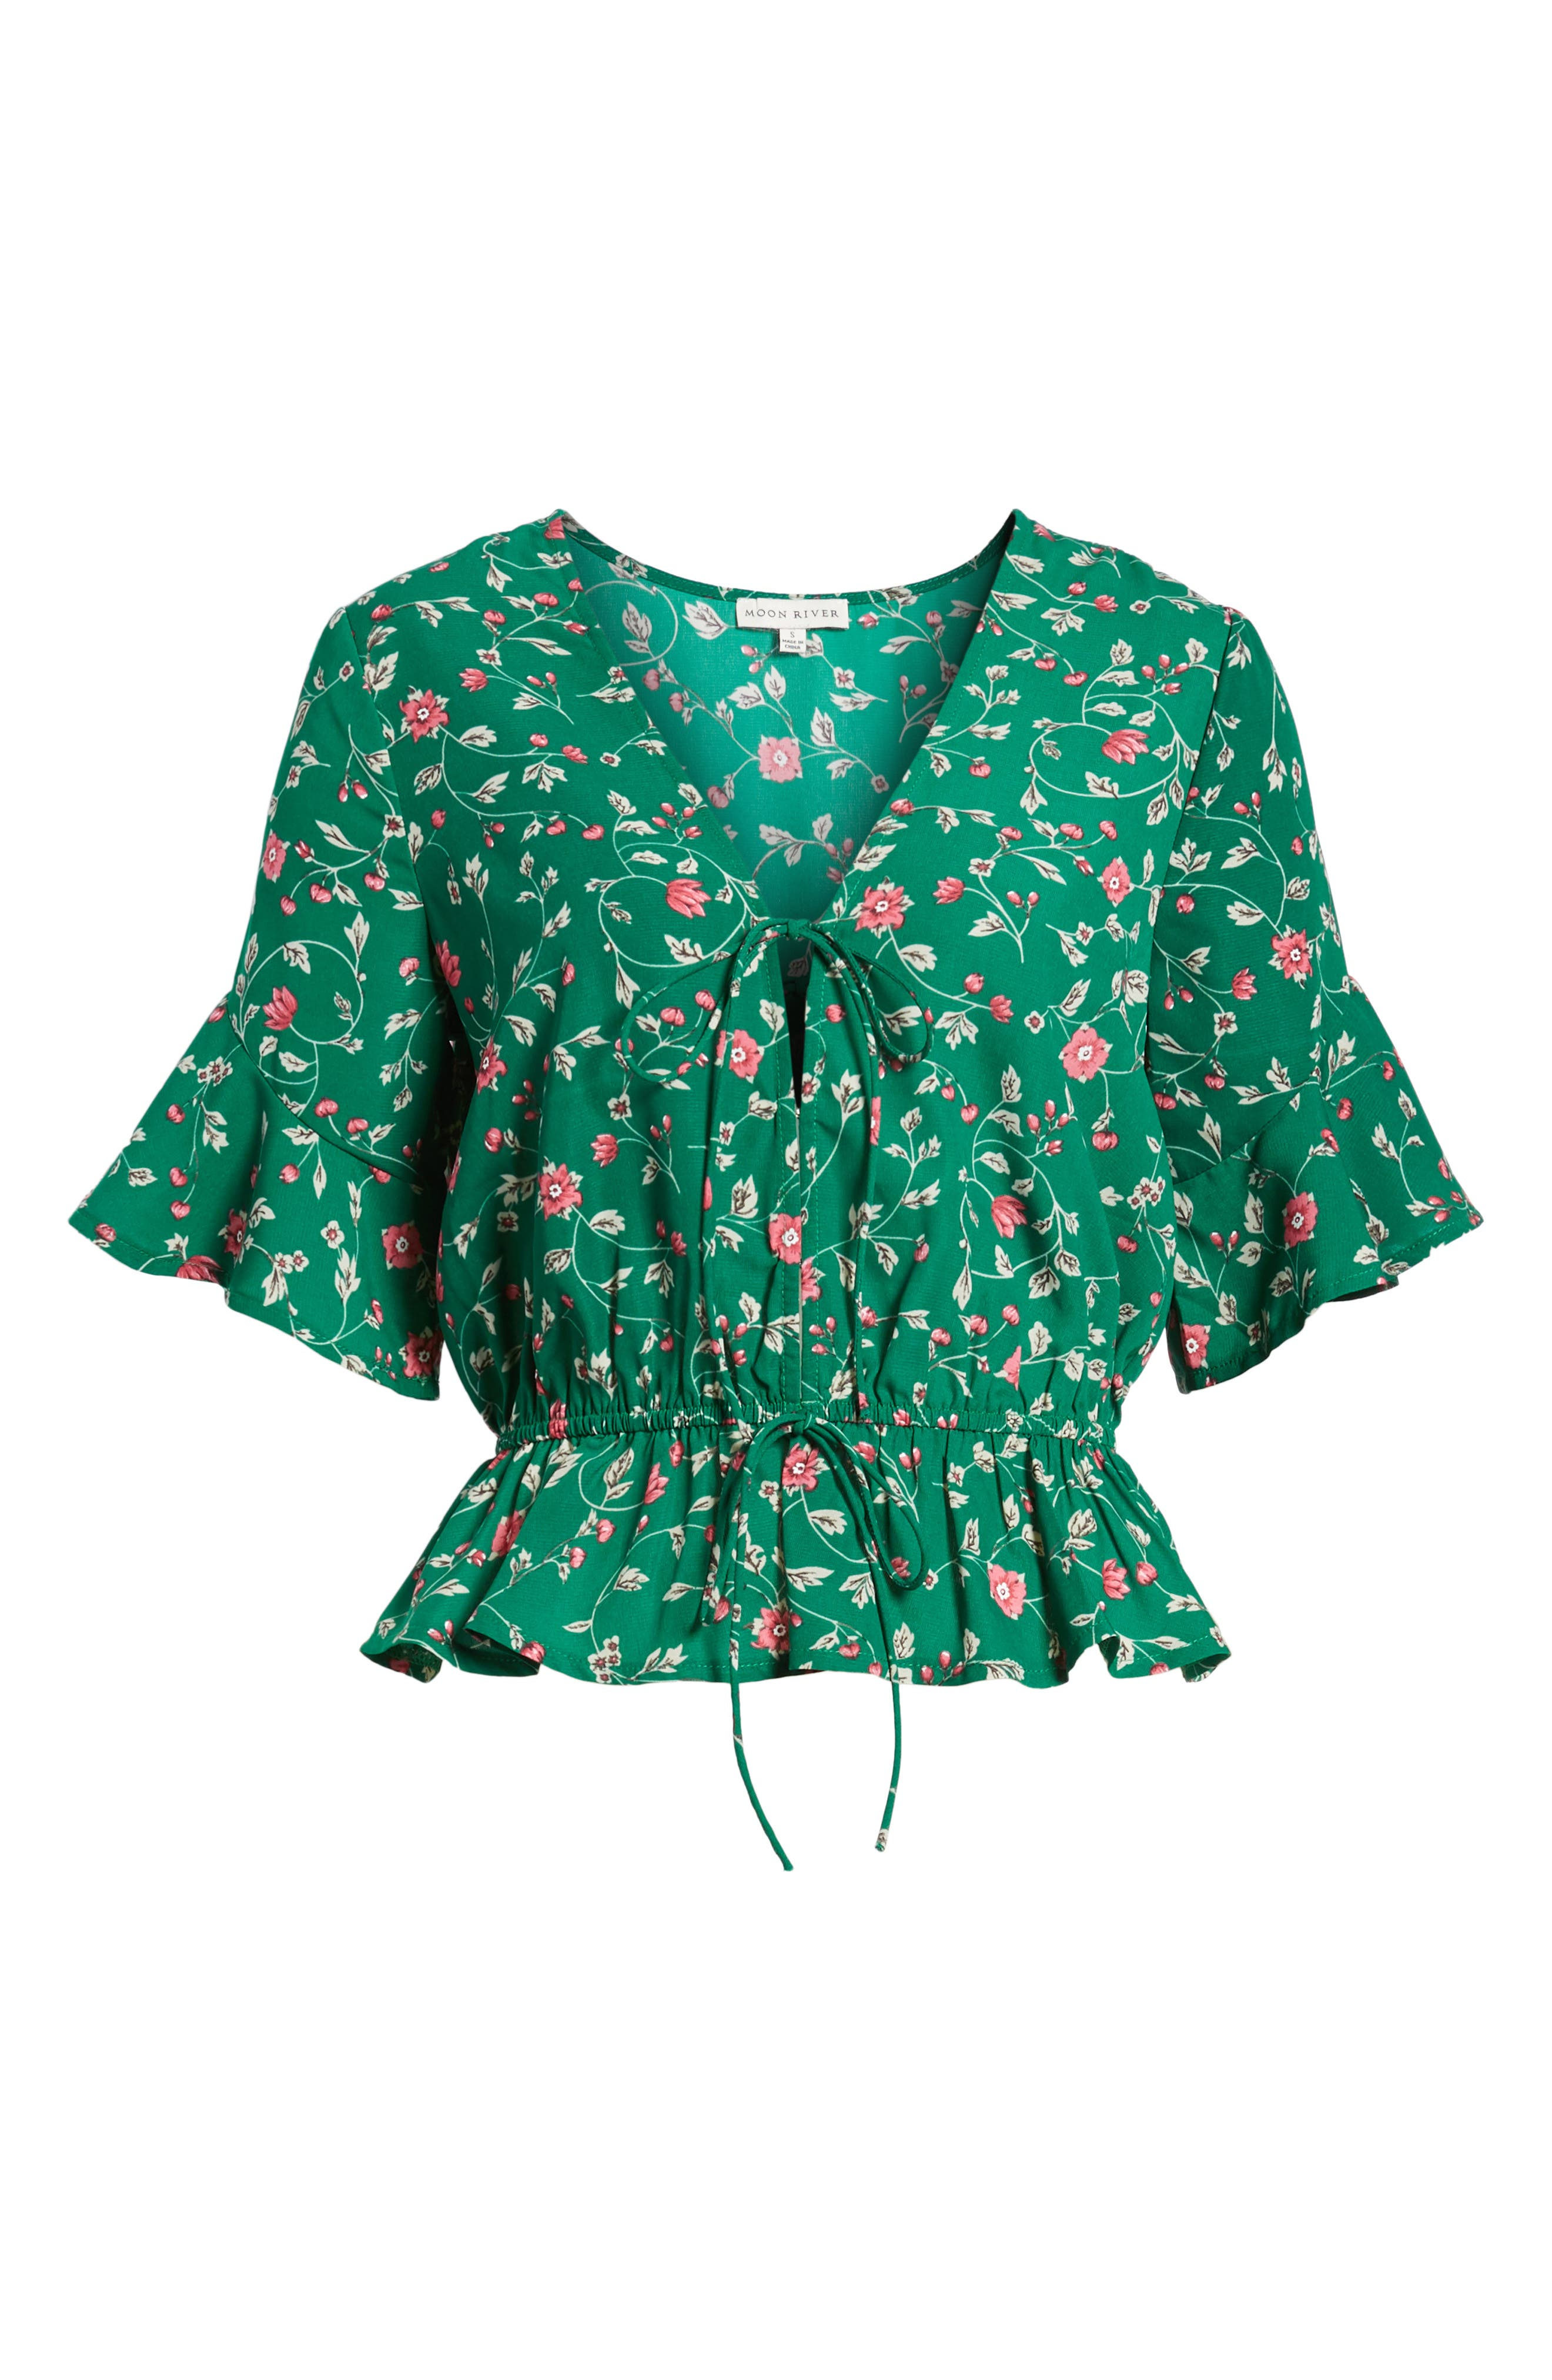 Floral Tie Front Peplum Top,                             Alternate thumbnail 7, color,                             Green/ Pink Floral